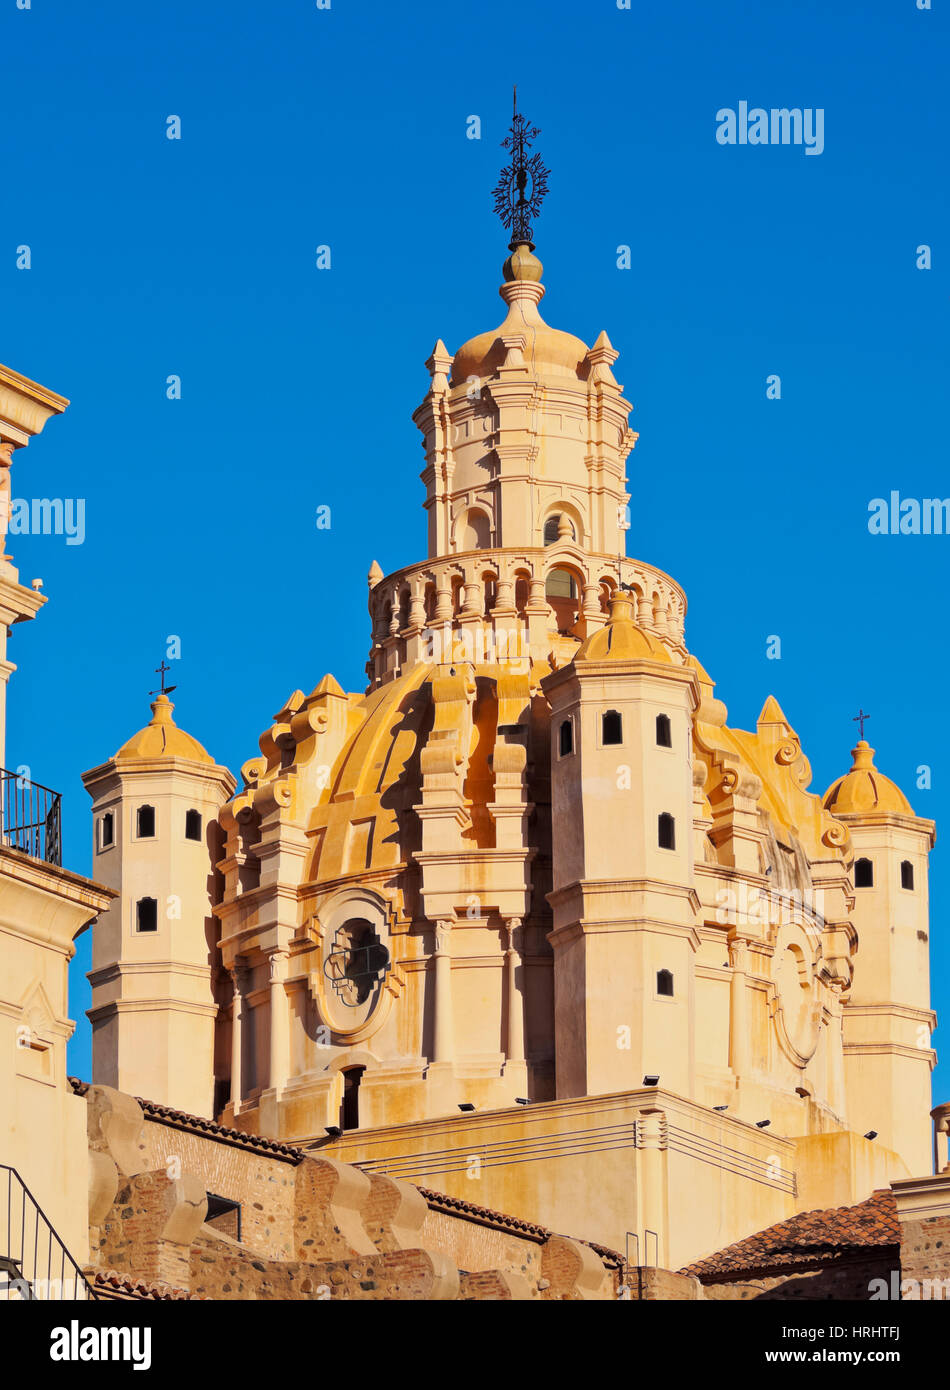 Detailed view of the Cathedral of Cordoba, Cordoba, Argentina - Stock Image